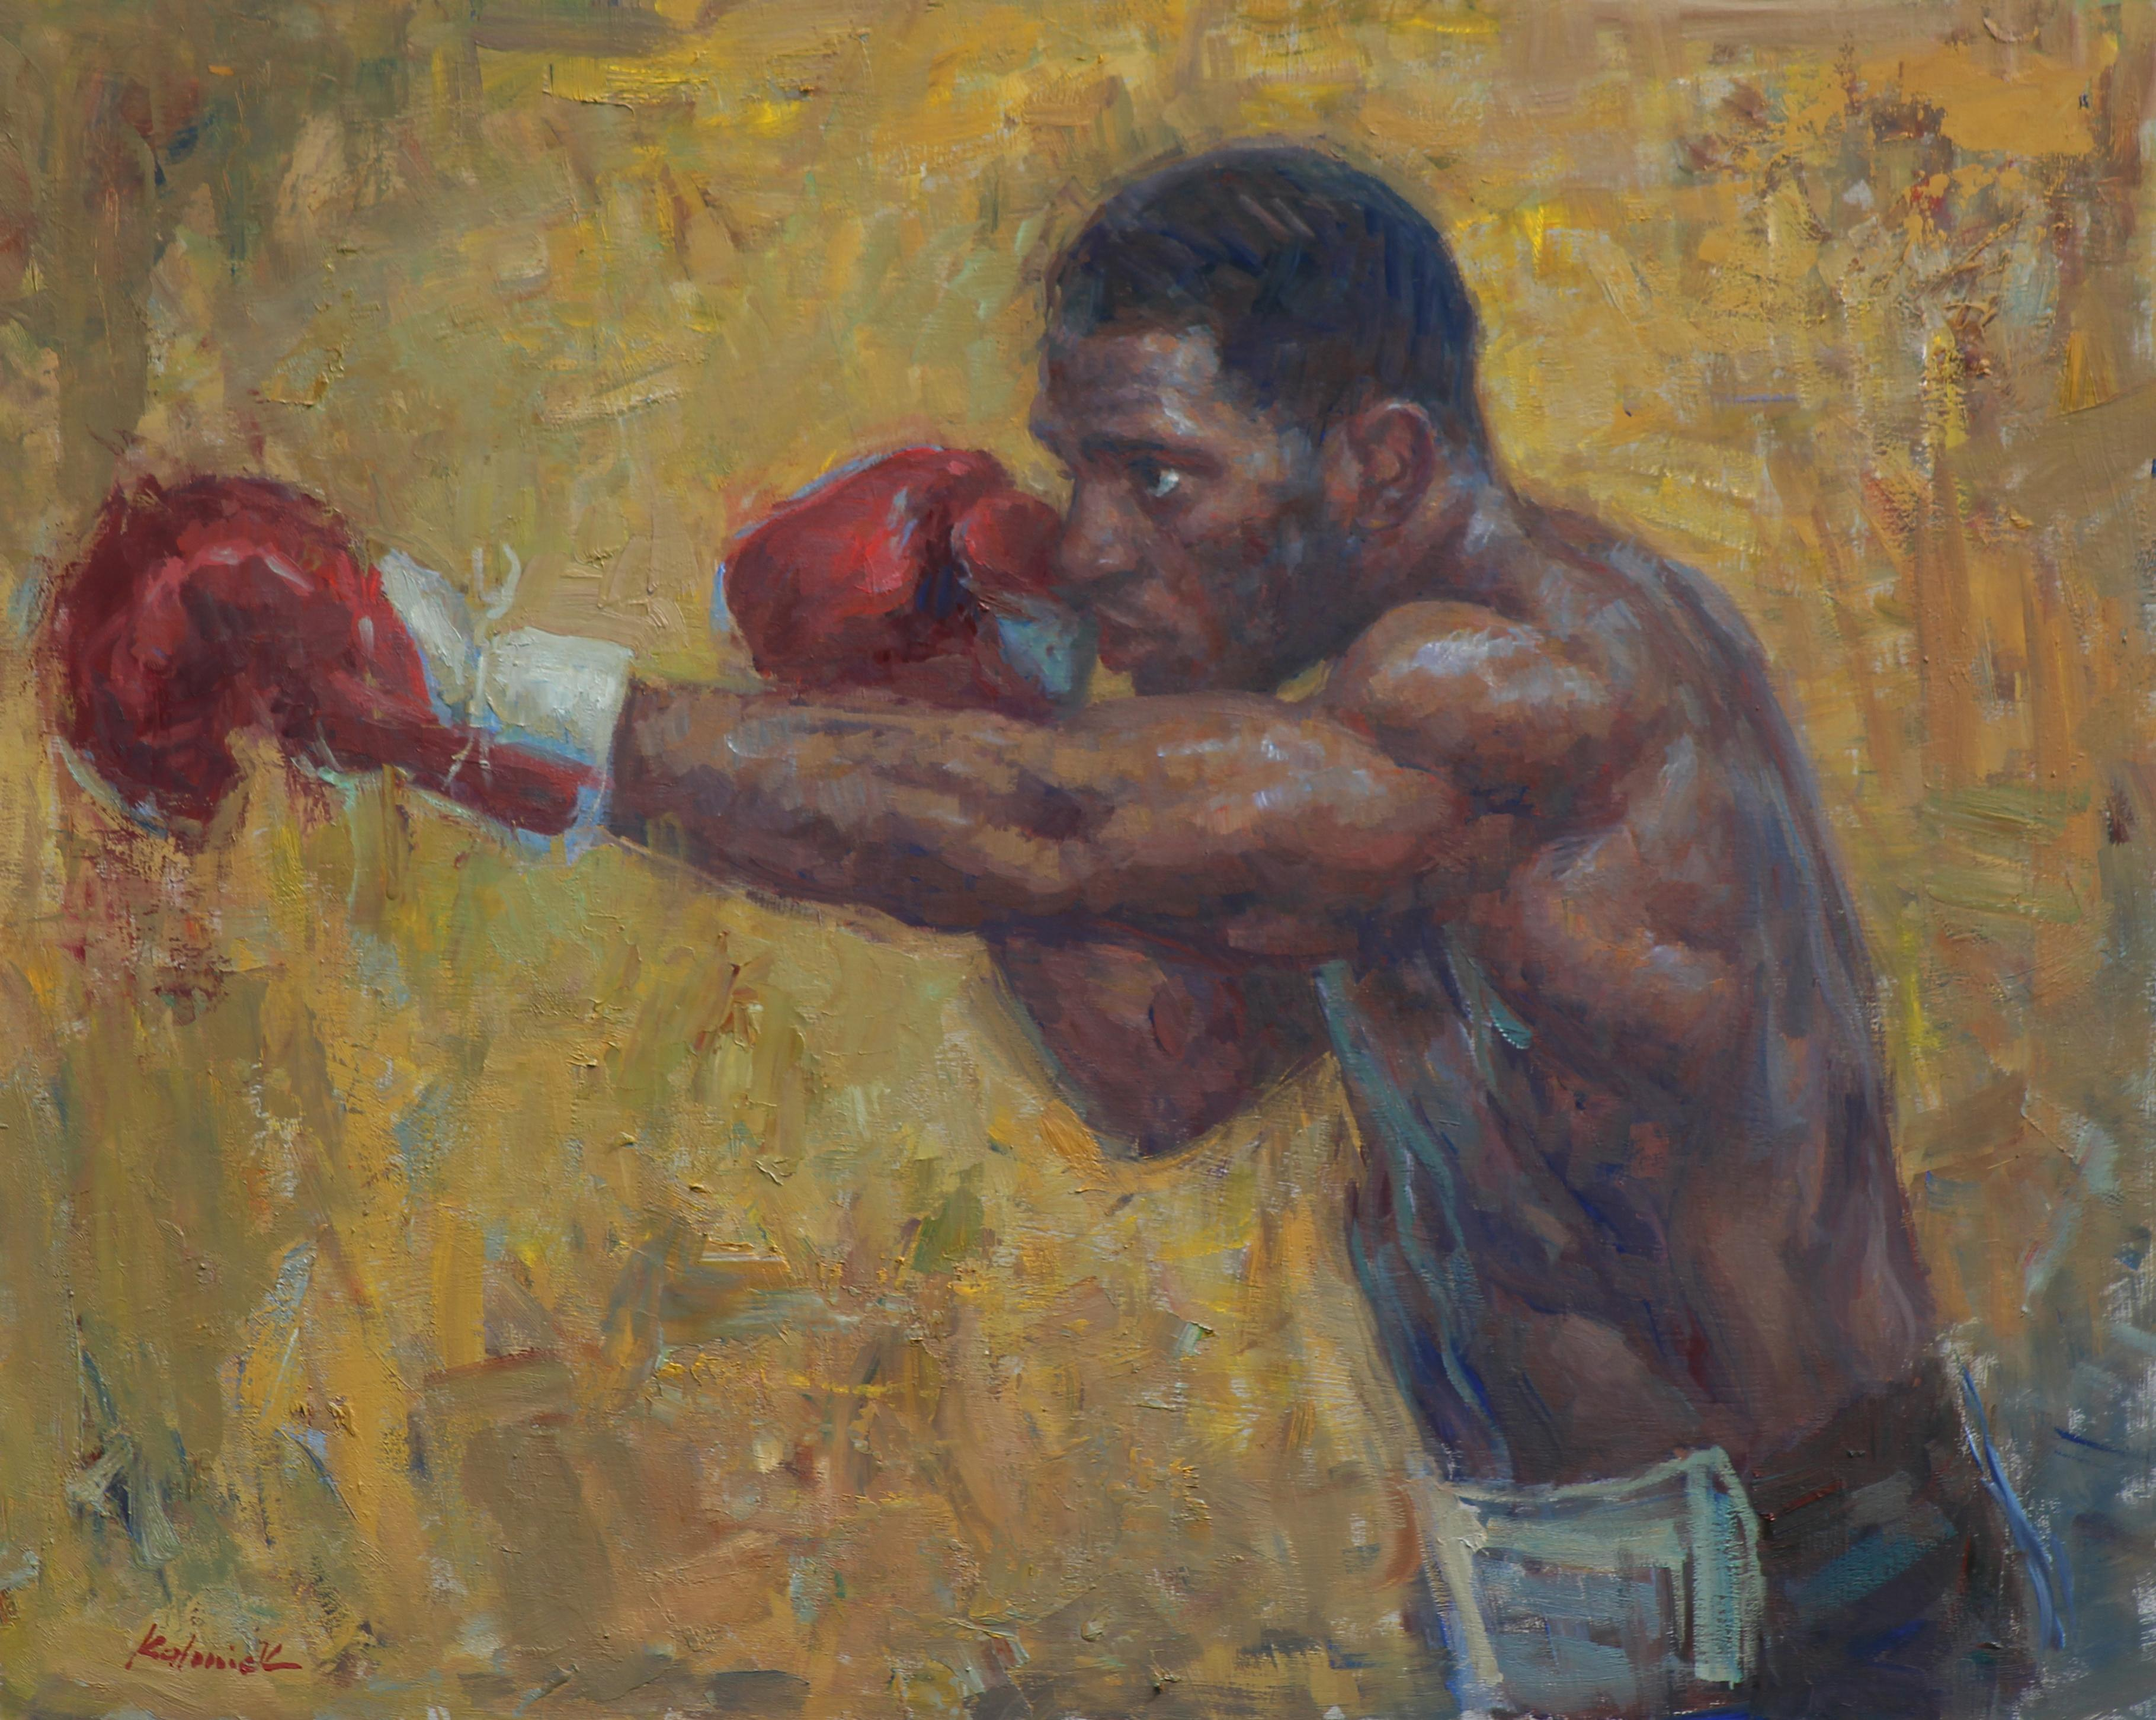 Kurt Scoby, portrait, professional boxer, welterweight division, oil painting